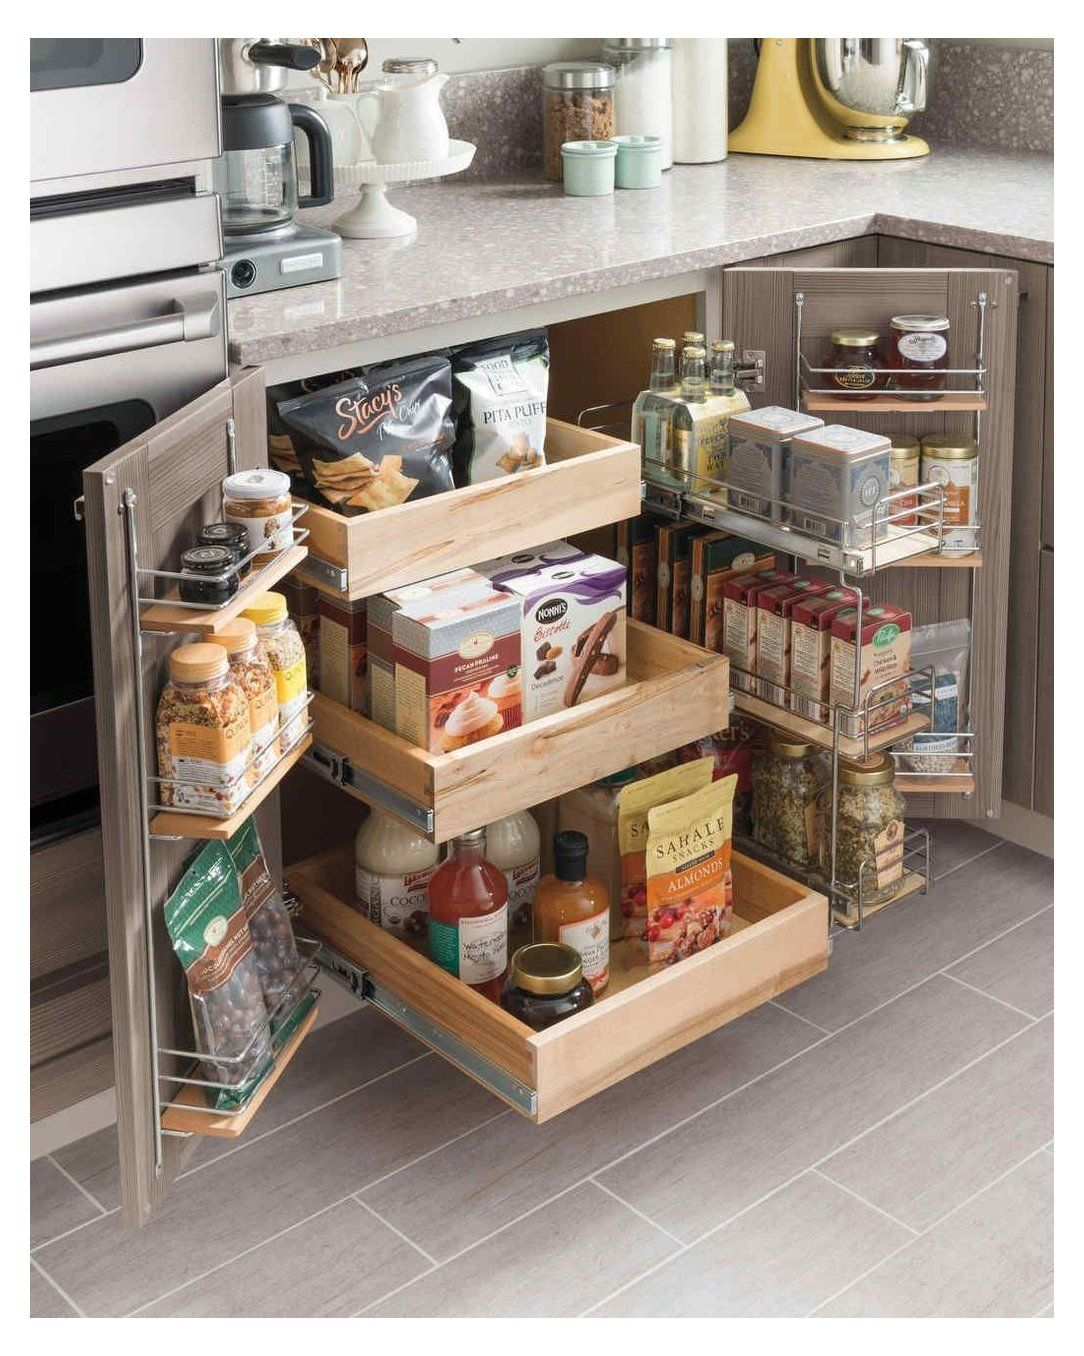 30 Awesome Small Kitchen Storage Ideas - Image 11 of 30 #kitchenstorage